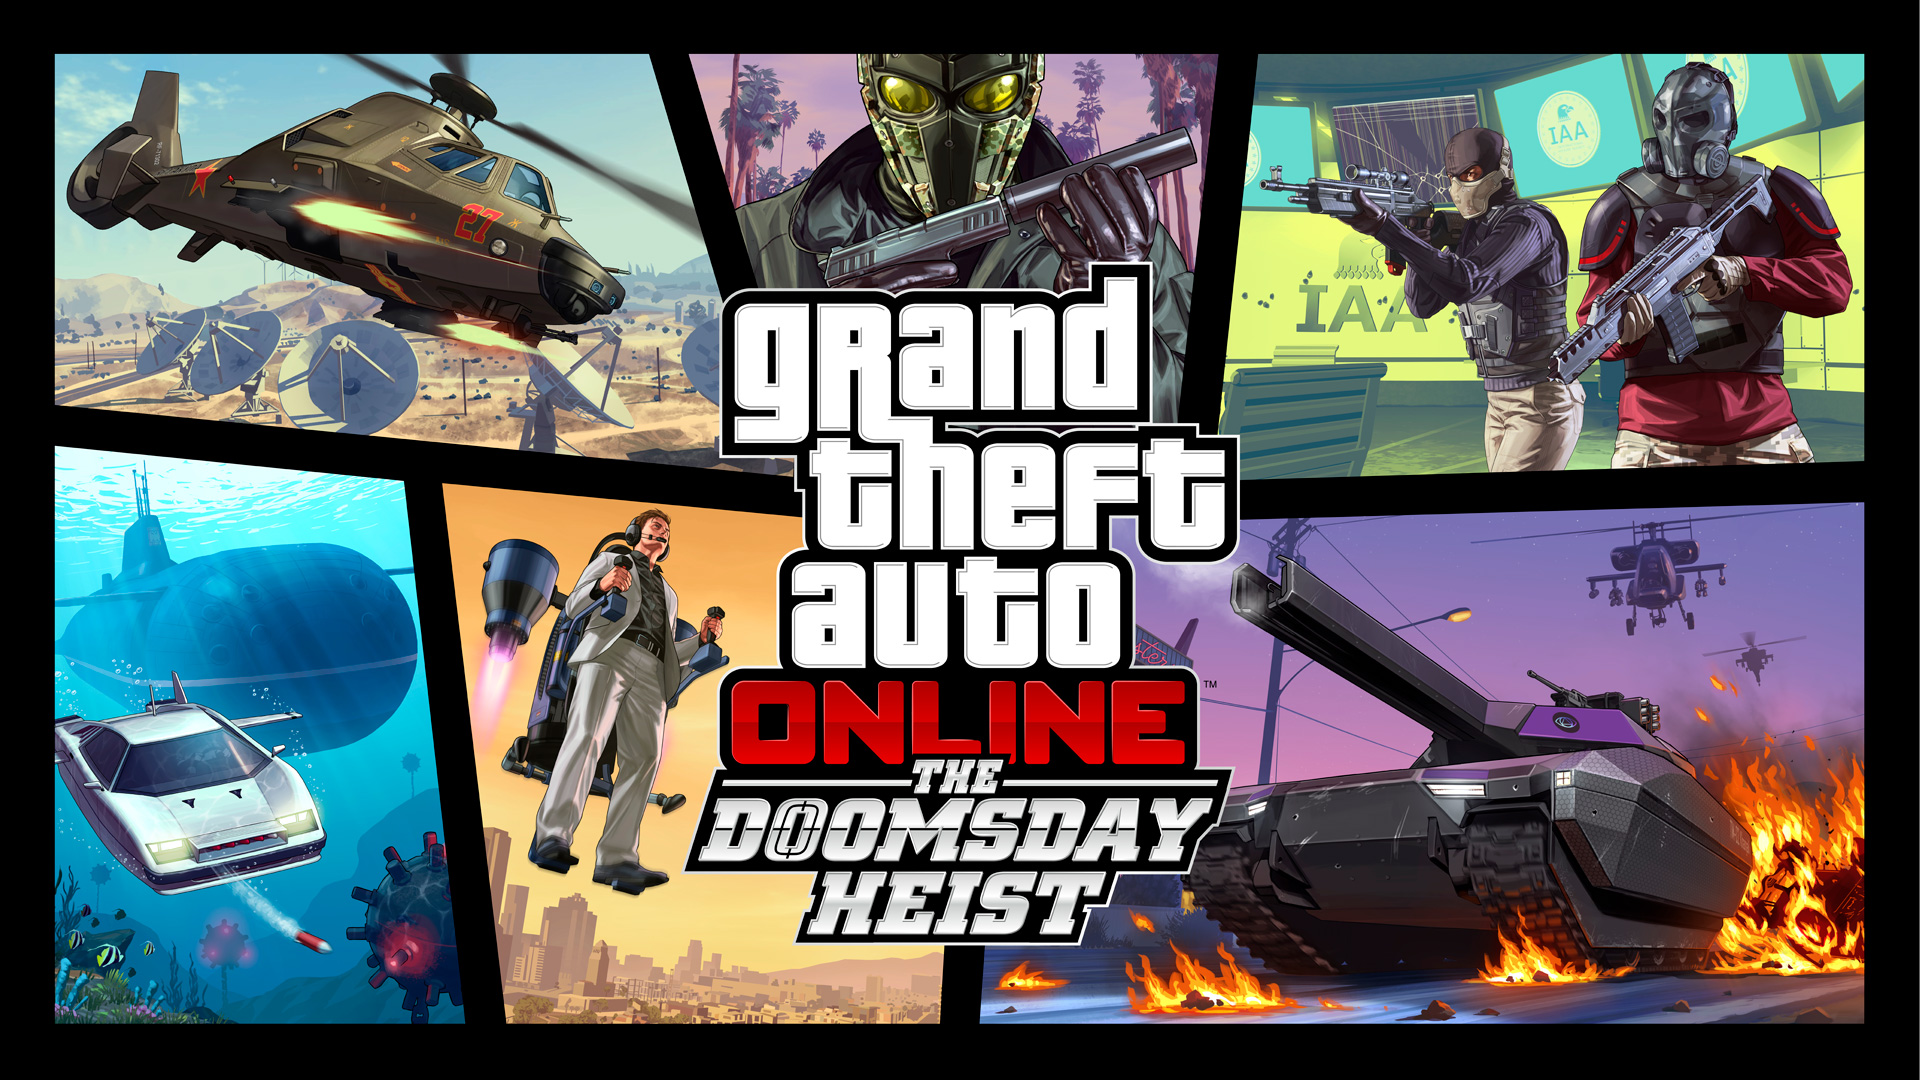 Play  C B Grand Theft Auto Online The Doomsday Heist Collage Of Multiple Scenes Where Criminals Use Guns